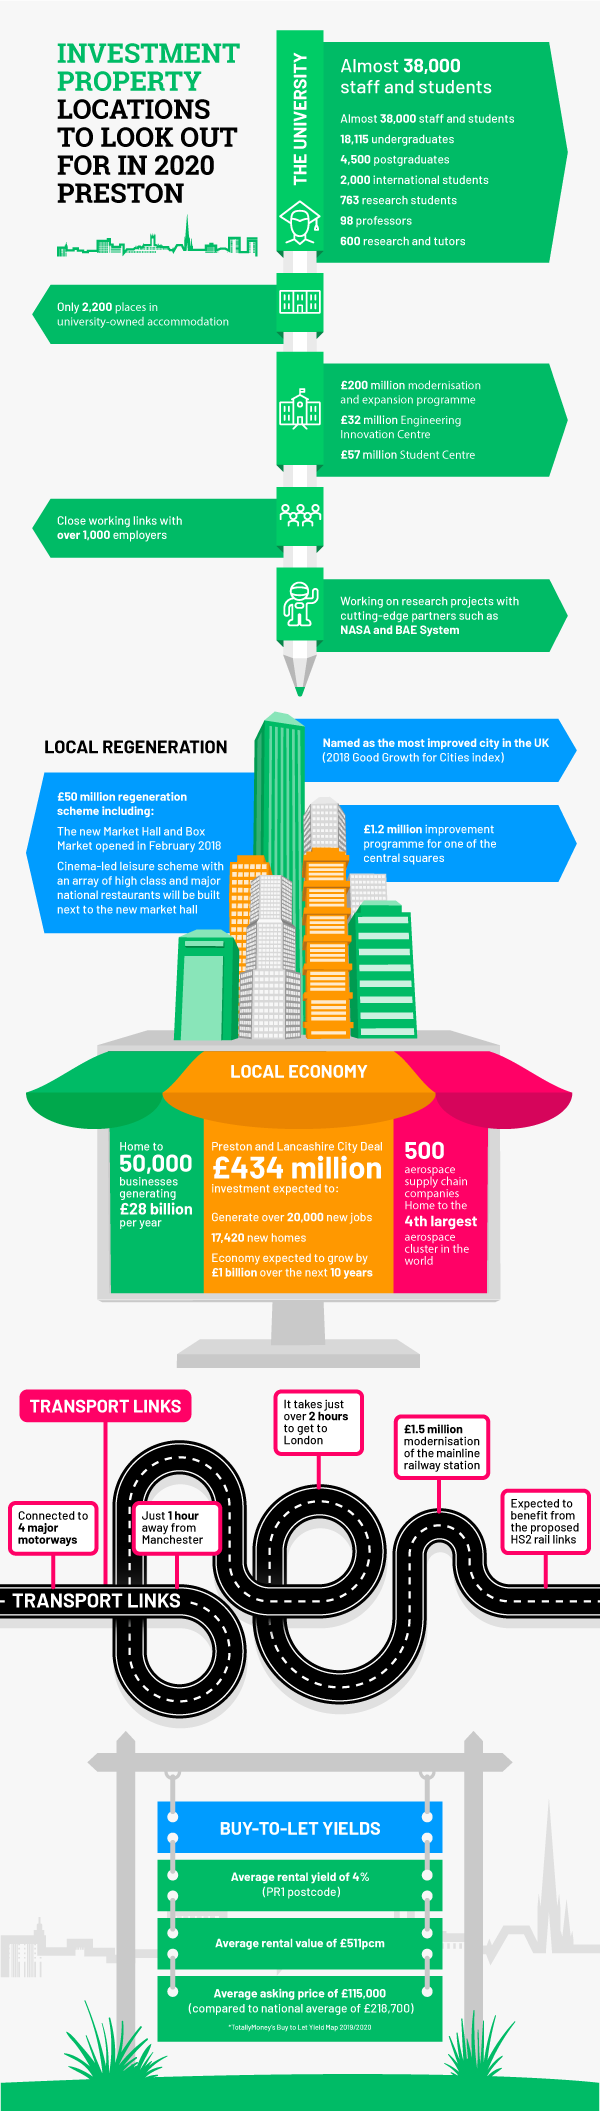 Investment property infographic